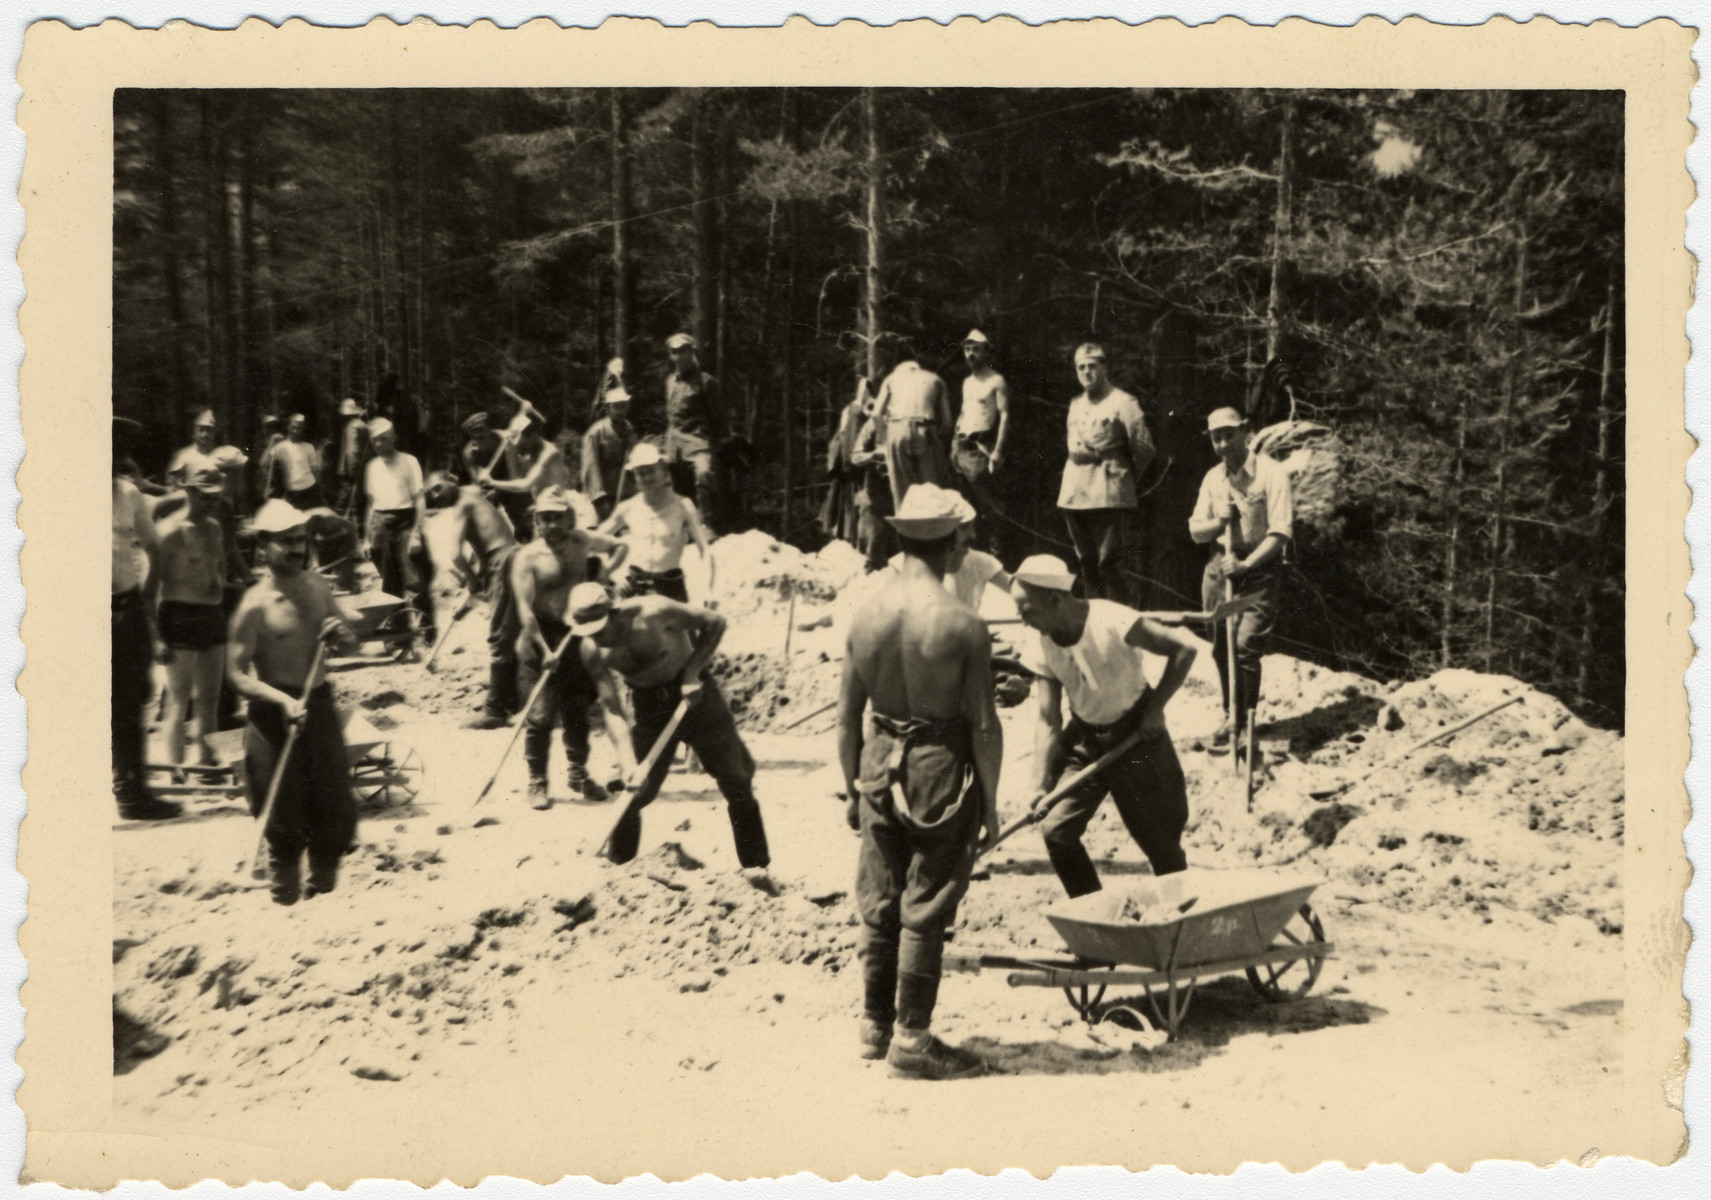 Bulgarian Jews dig a road in a forced labor brigade.  Standing in the back in his army uniform is Nissim Farhi.  In Bulgaria, Jewish officers were allowed to serve as officers in labor brigades and wear their uniforms.